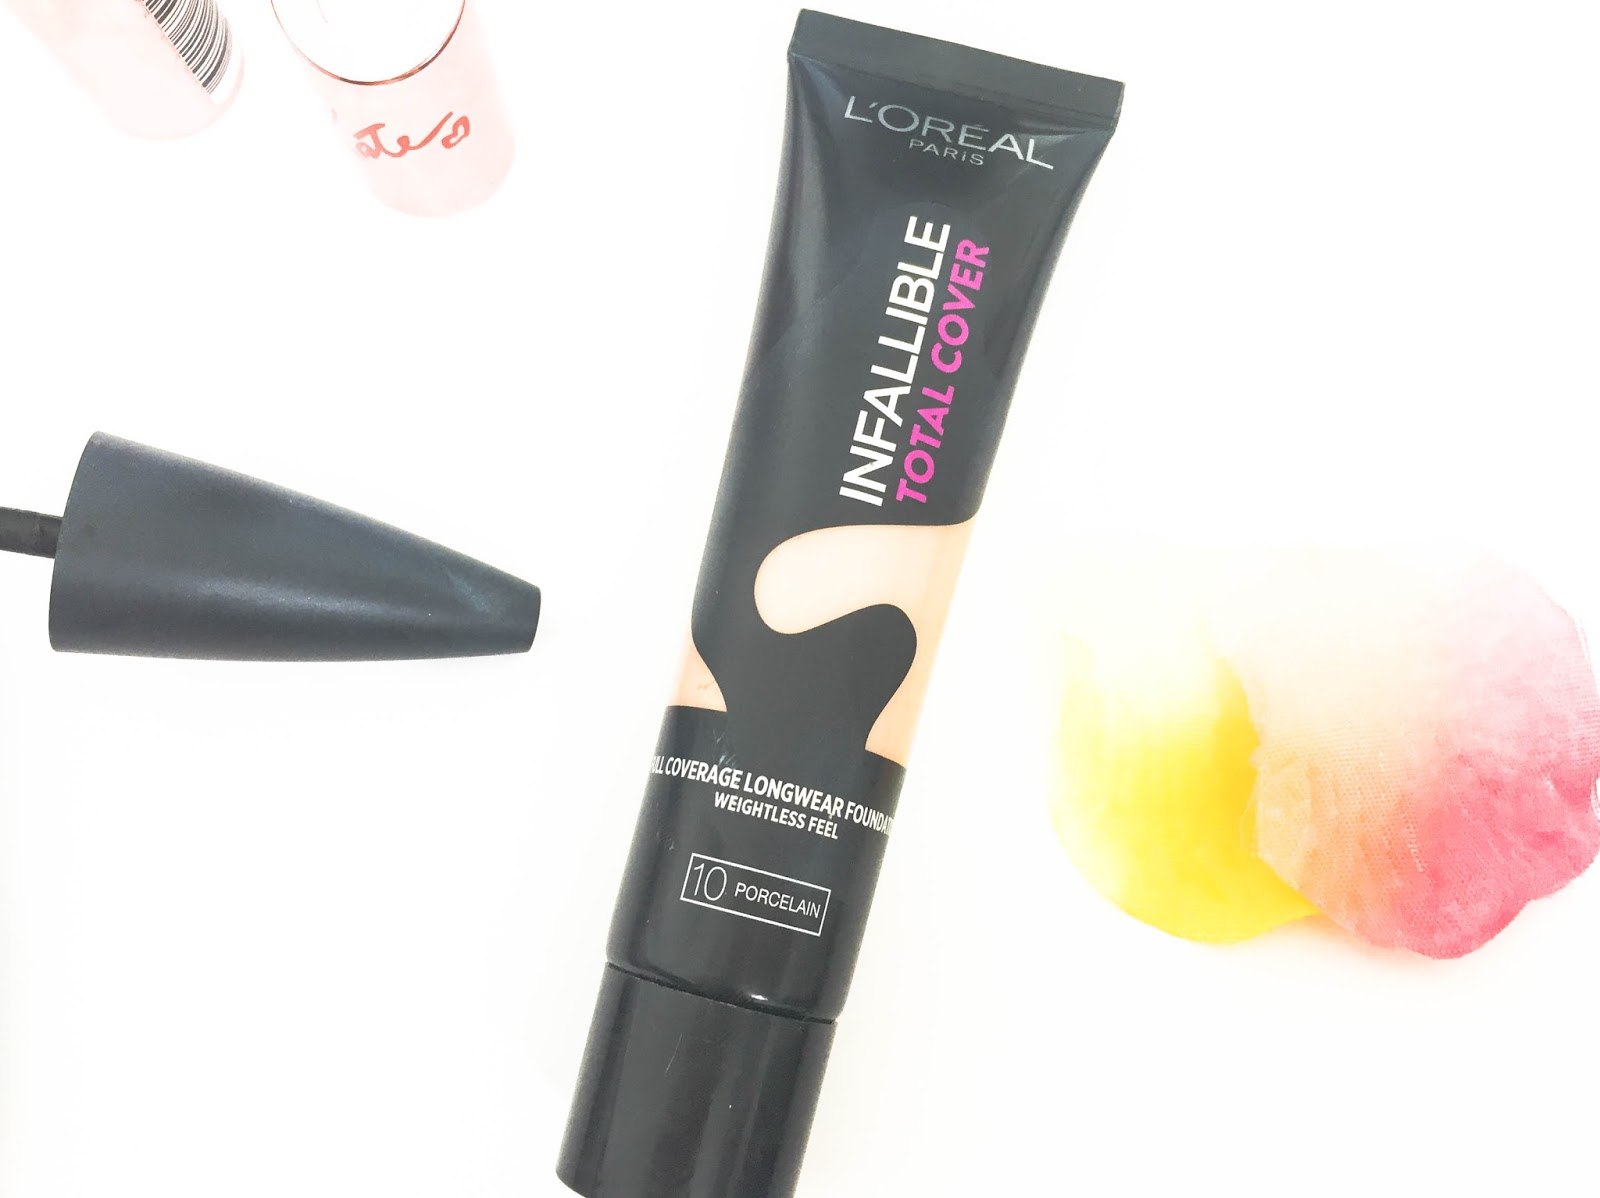 L'Oreal Infallible Total Cover Foundation in 10 Porcelain